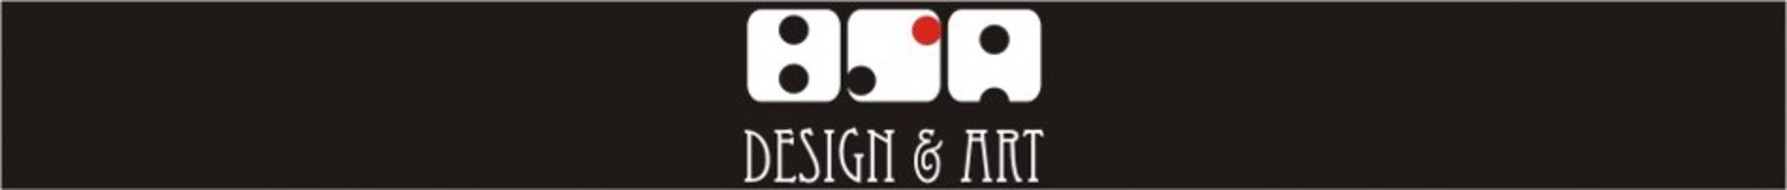 BSA Design & Art